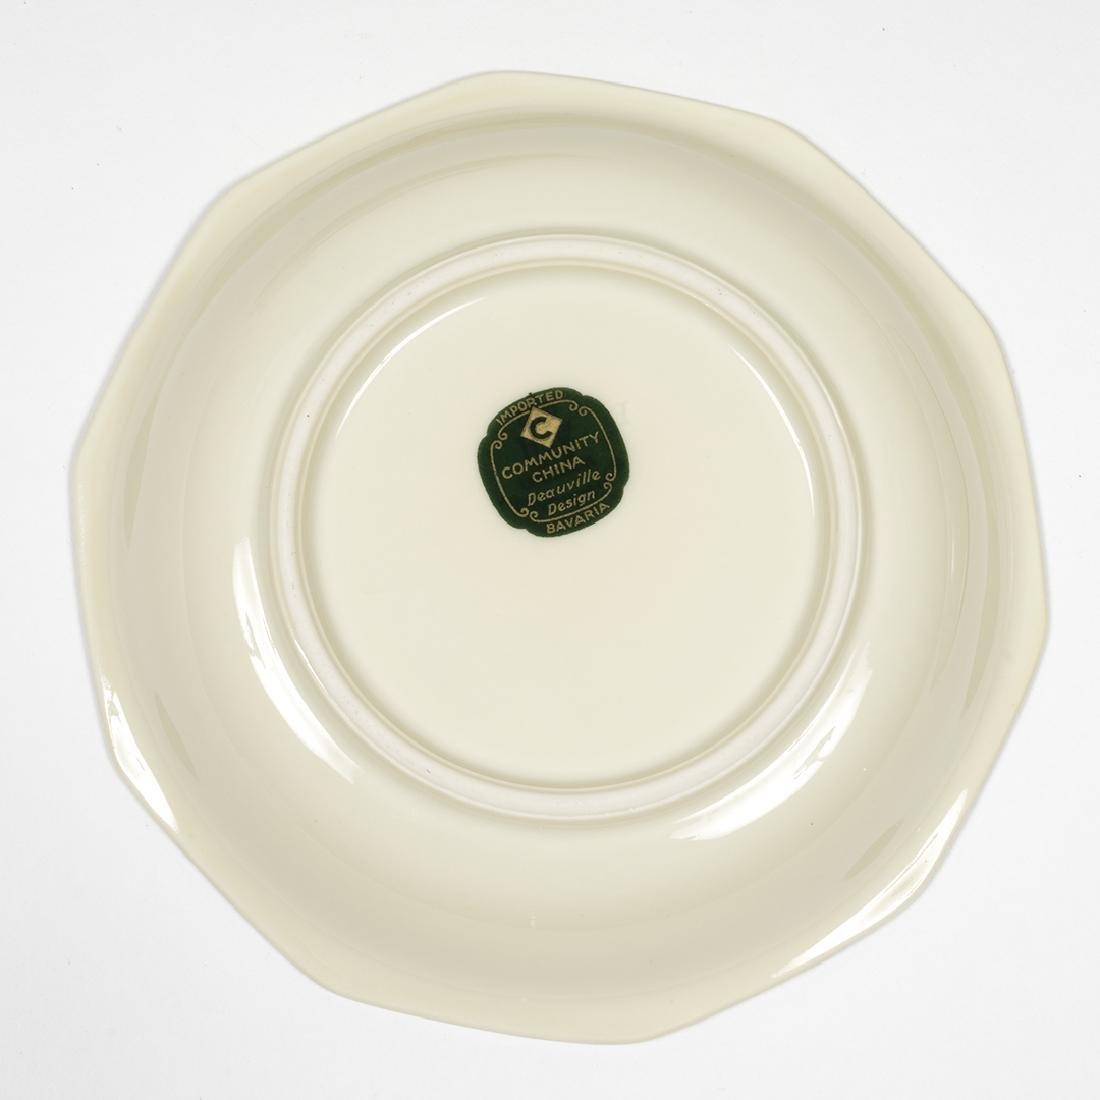 Community China Deauville Art Deco Dinnerware - 6